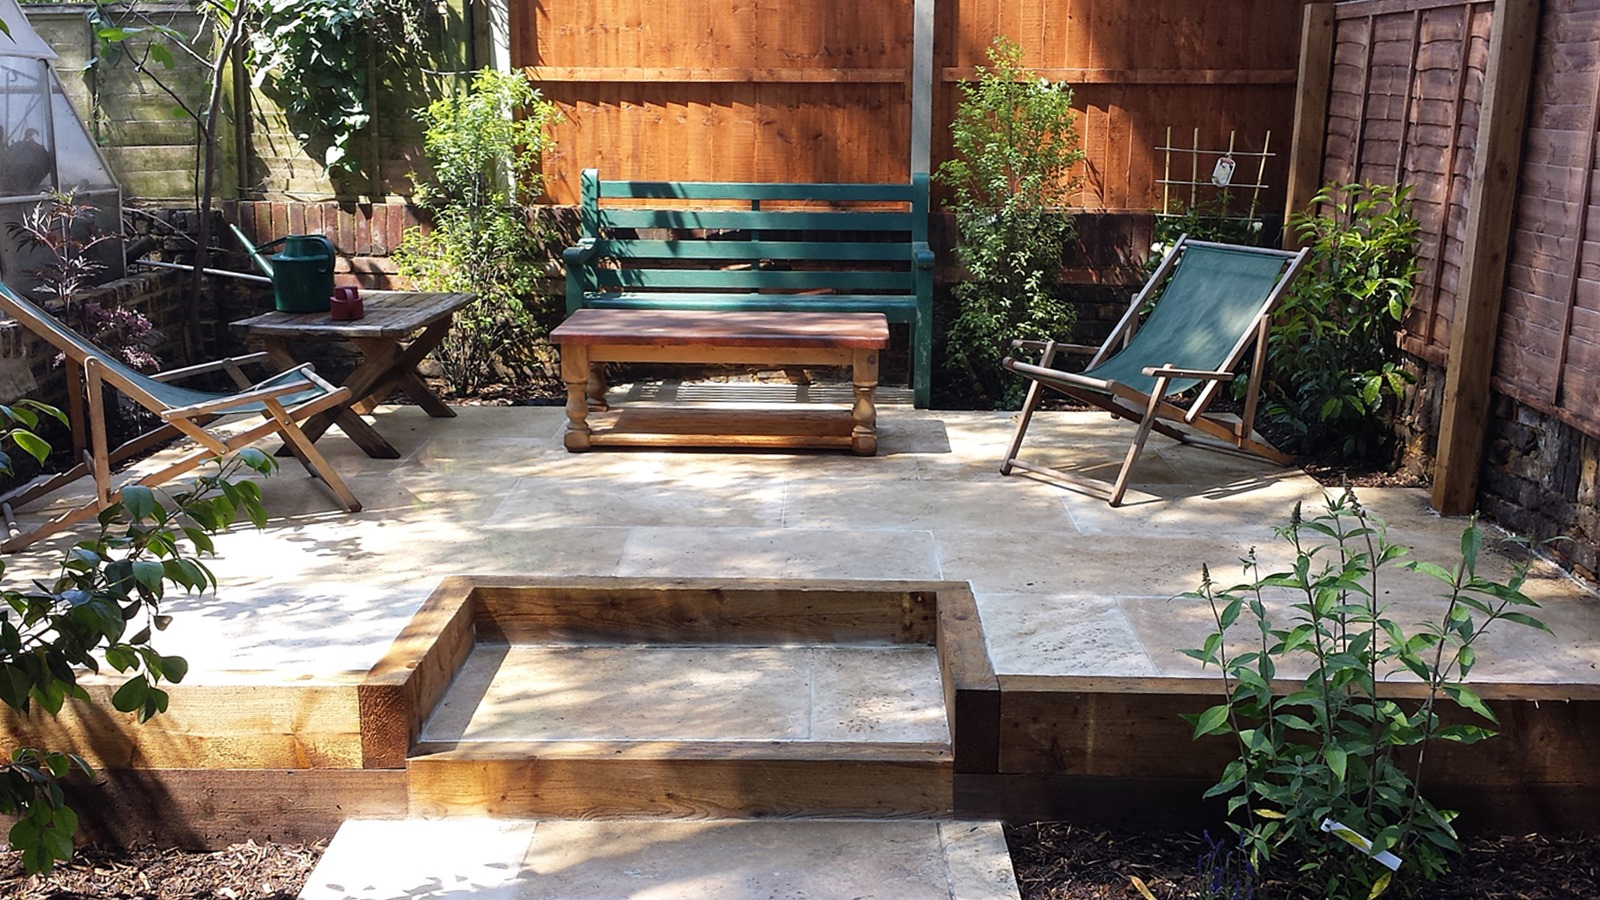 Travertine Paving Patio Modern Garden Design Landscaping ...